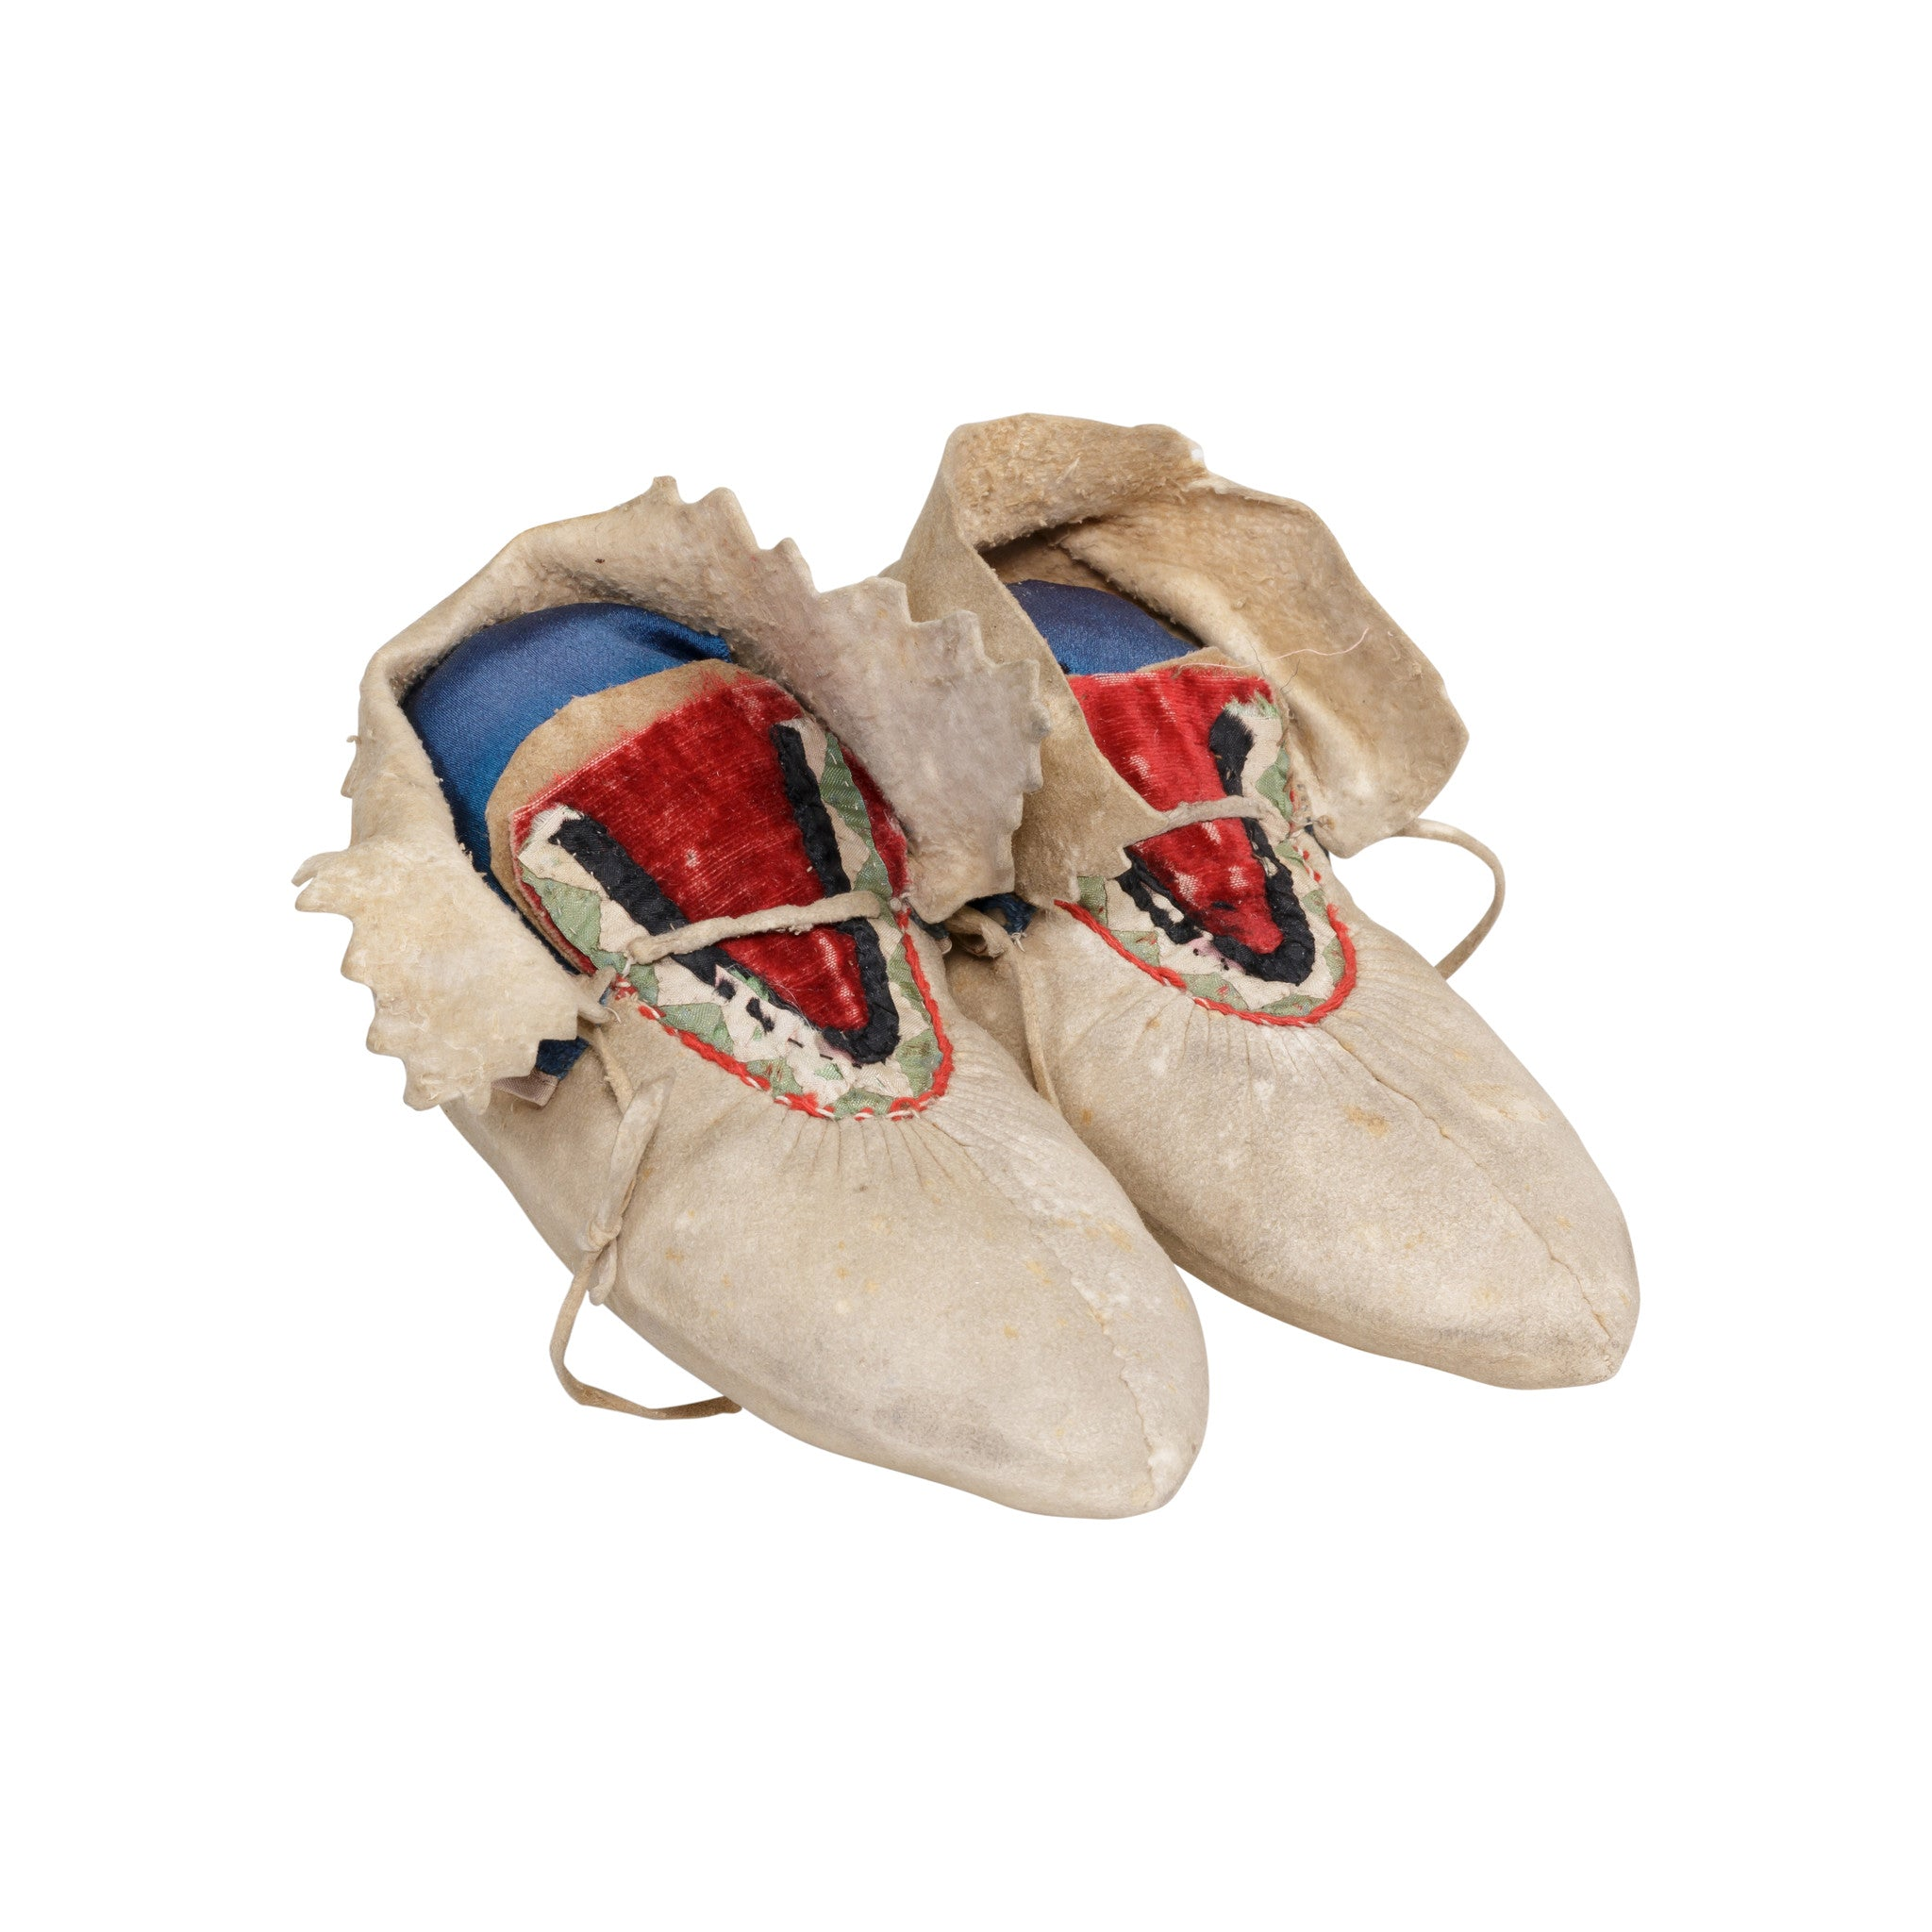 Chippewa Child's Moccasins beadwork, child's moccasins, chippewa, moccasins